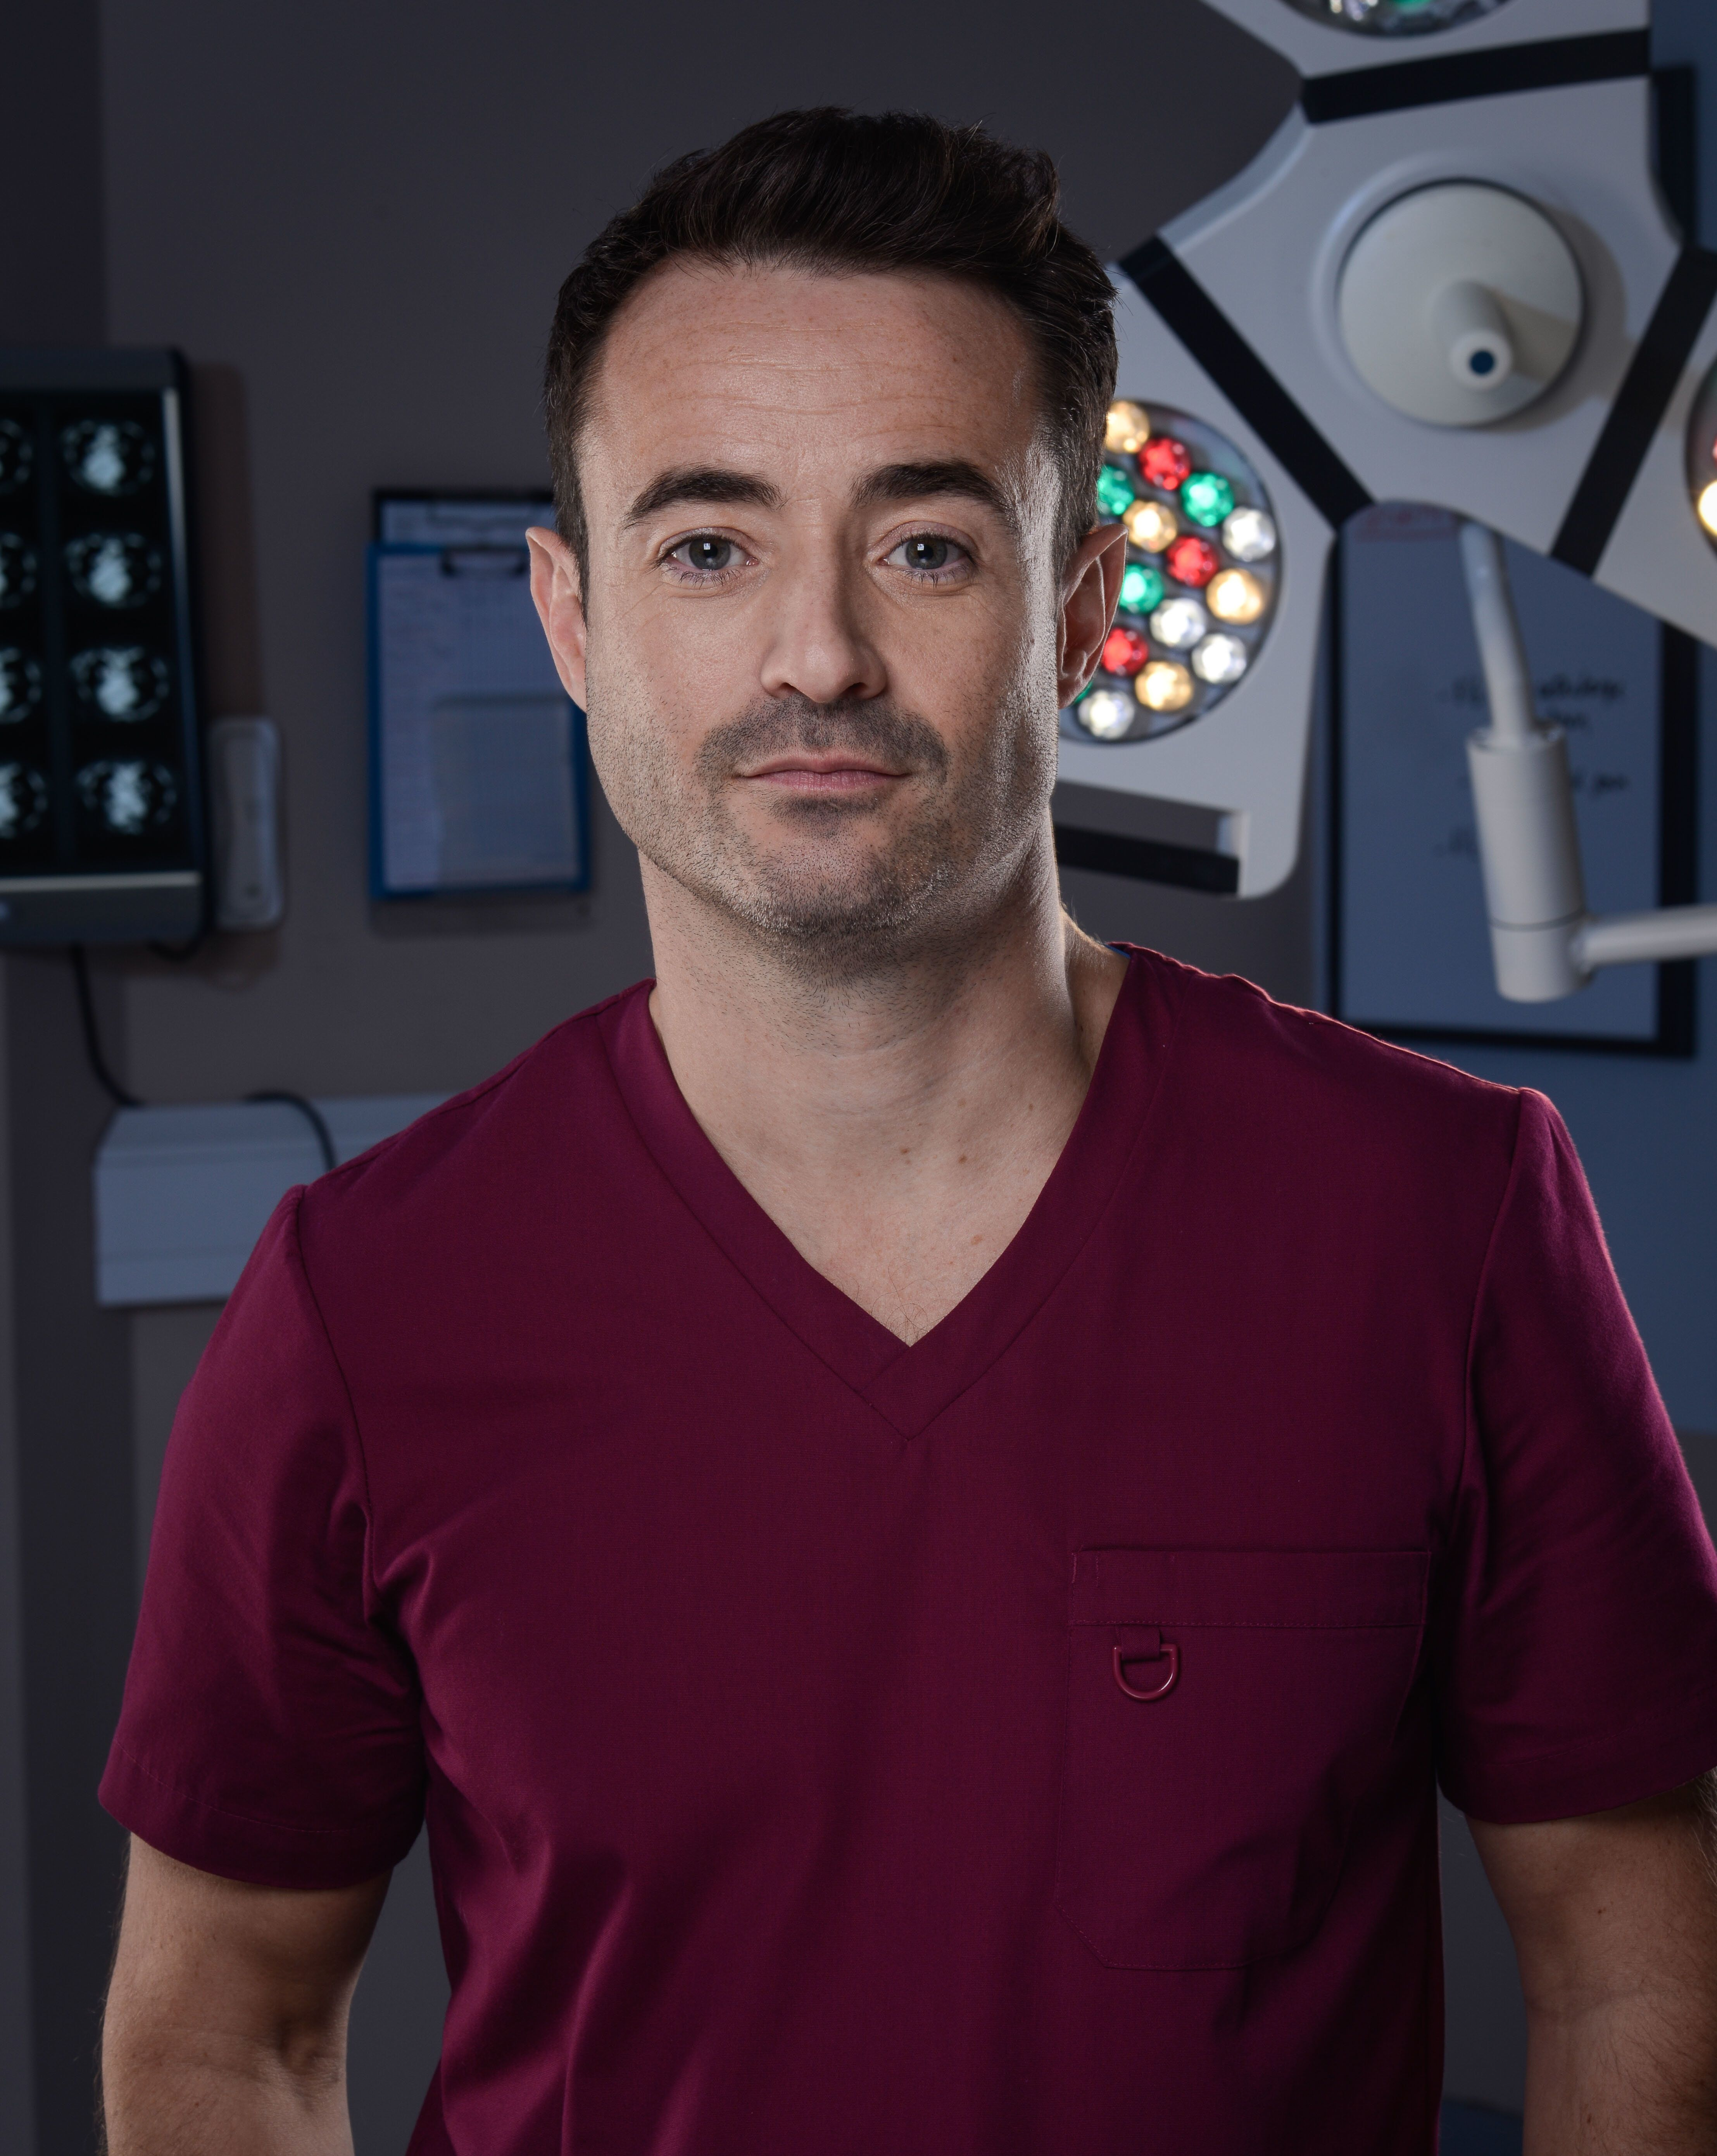 'Strictly Come Dancing's Joe McFadden Hints He Could Quit 'Holby City' After Show